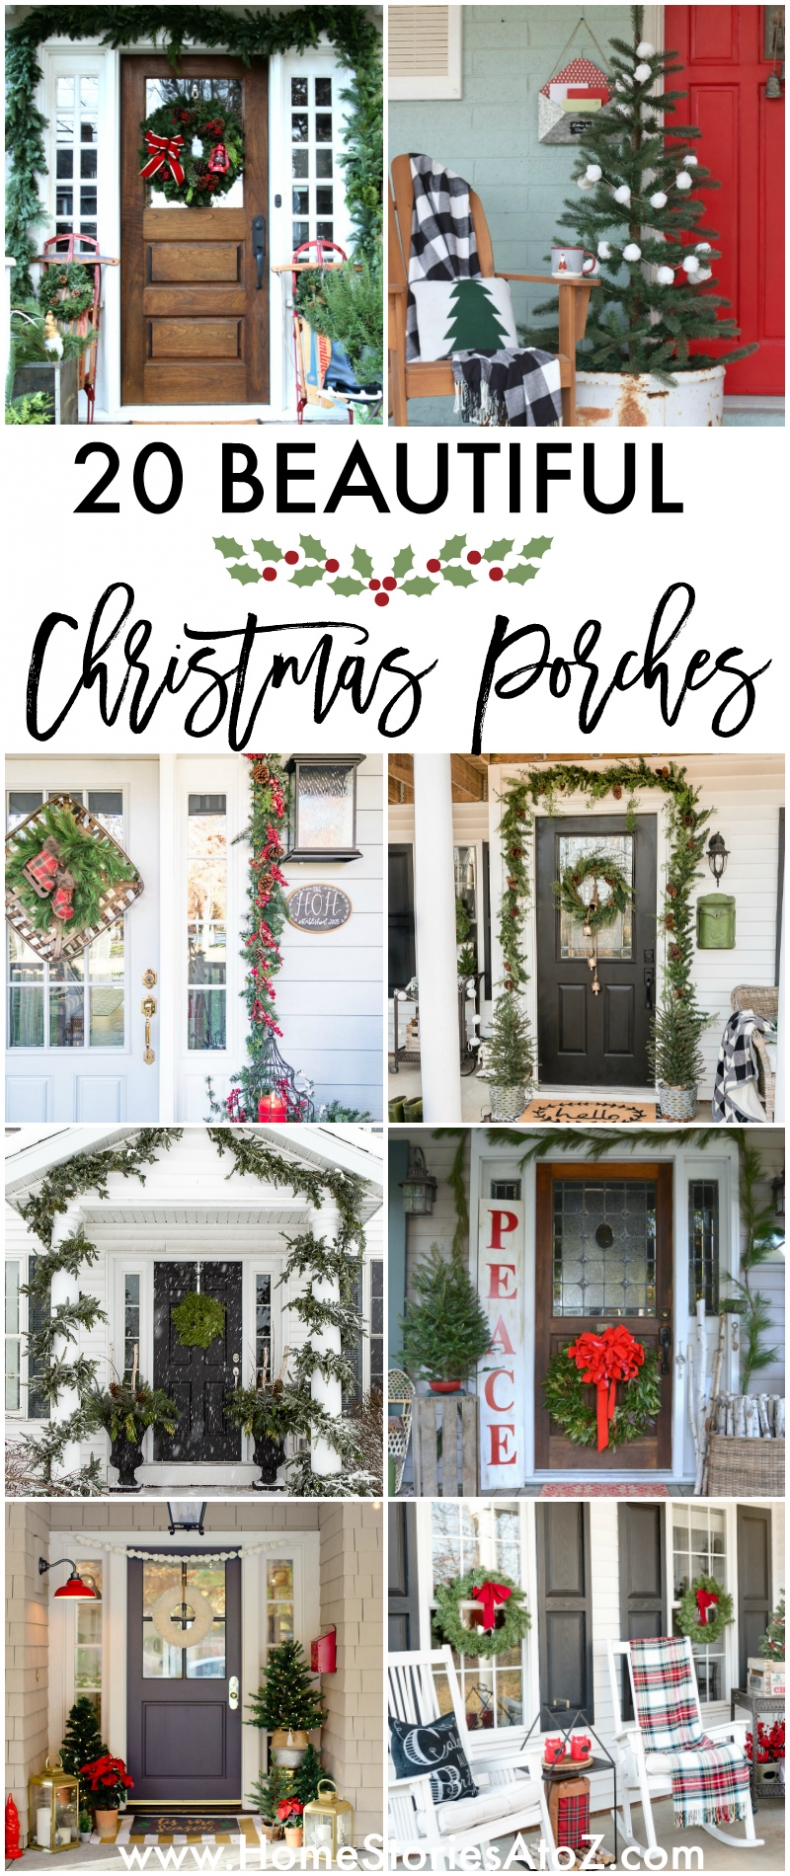 20 Beautiful Christmas Porch Ideas